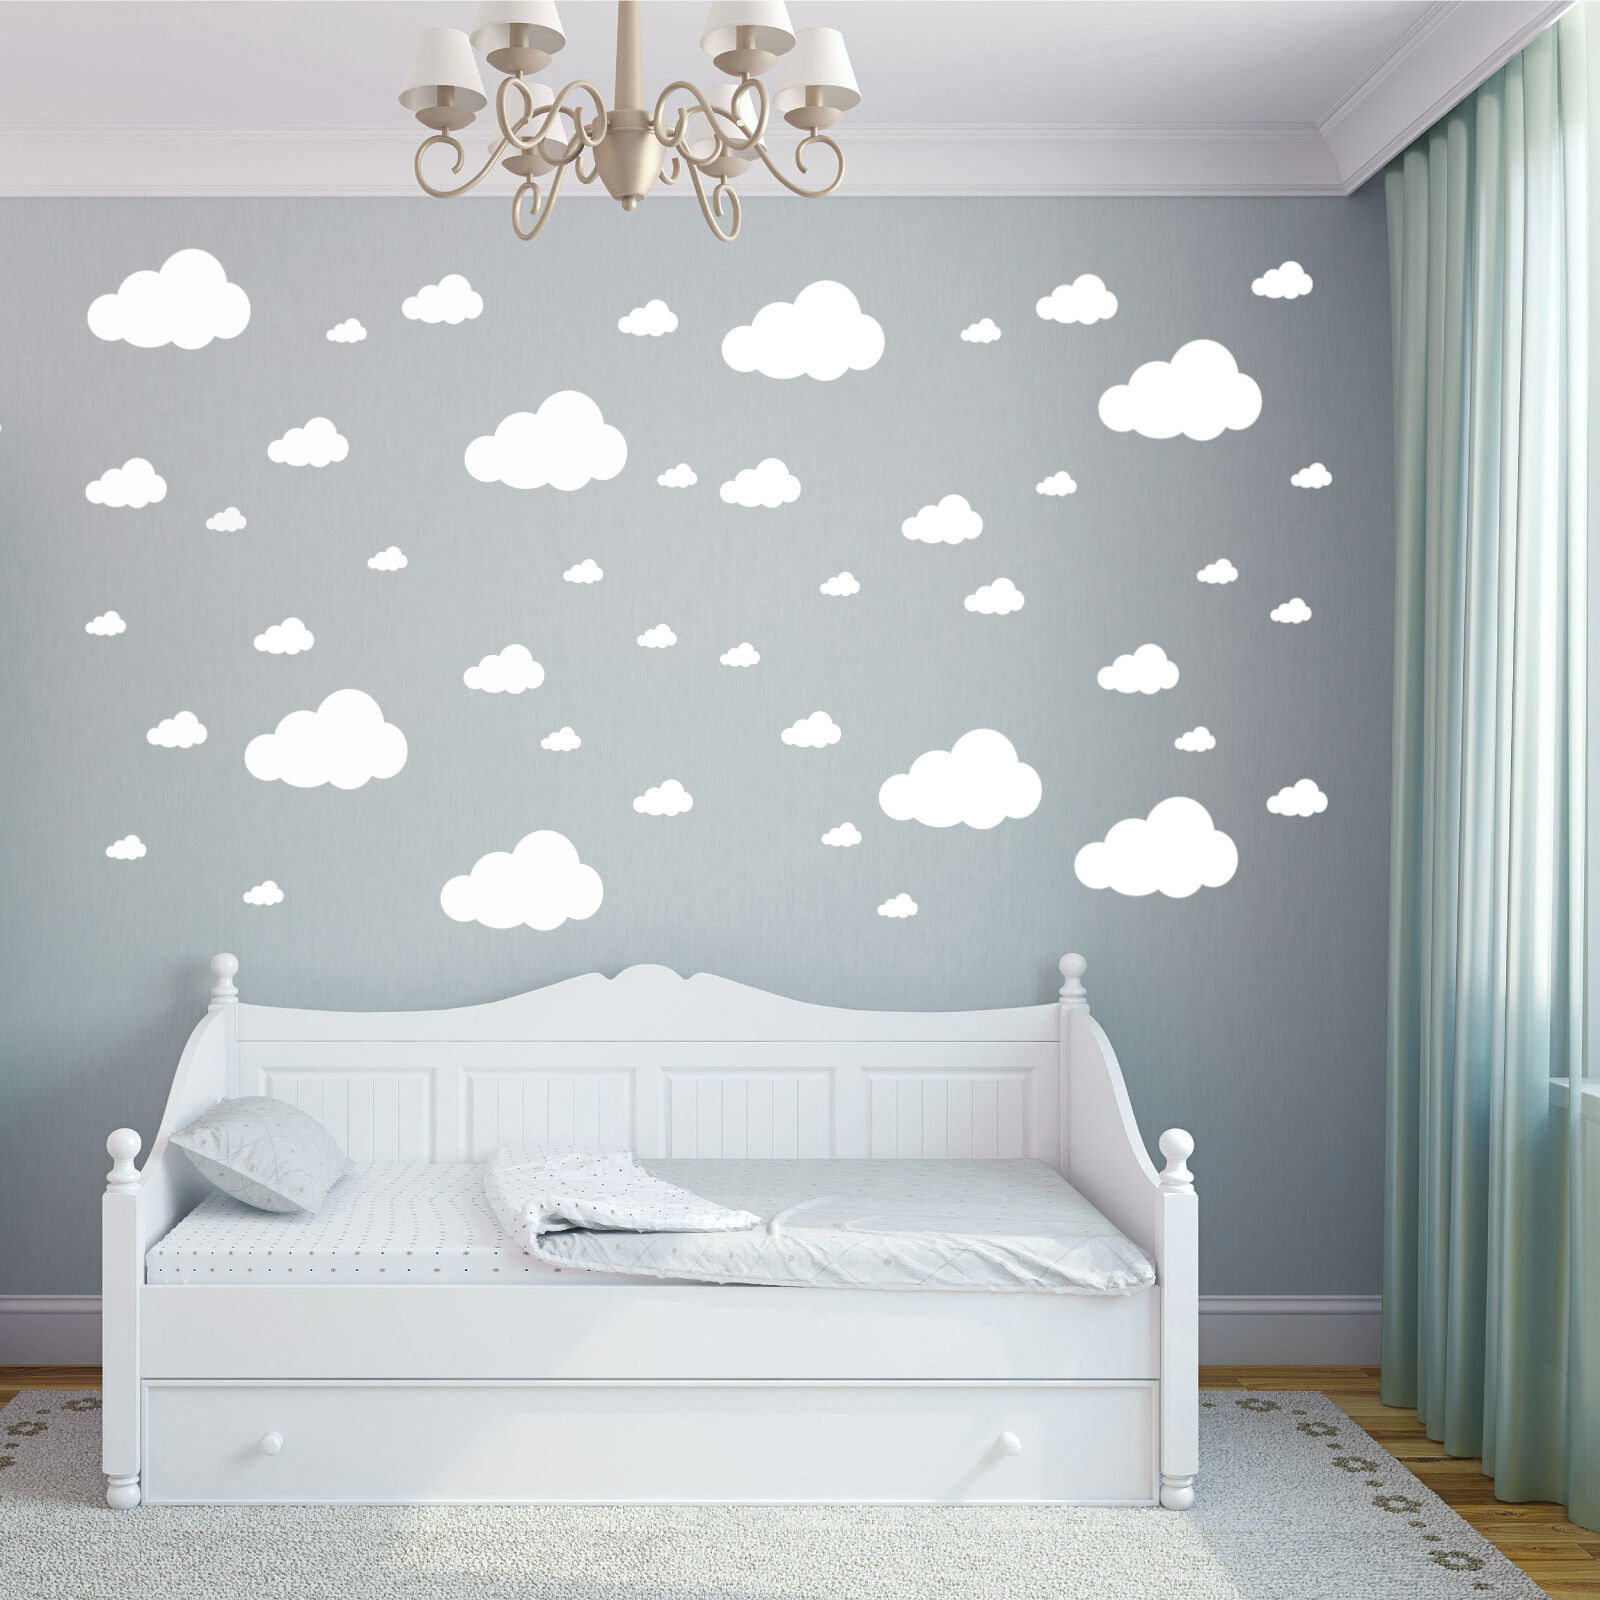 Home Decoration - Cloud Wall Stickers Children's Bedroom Nursery Sticker Decal Decoration